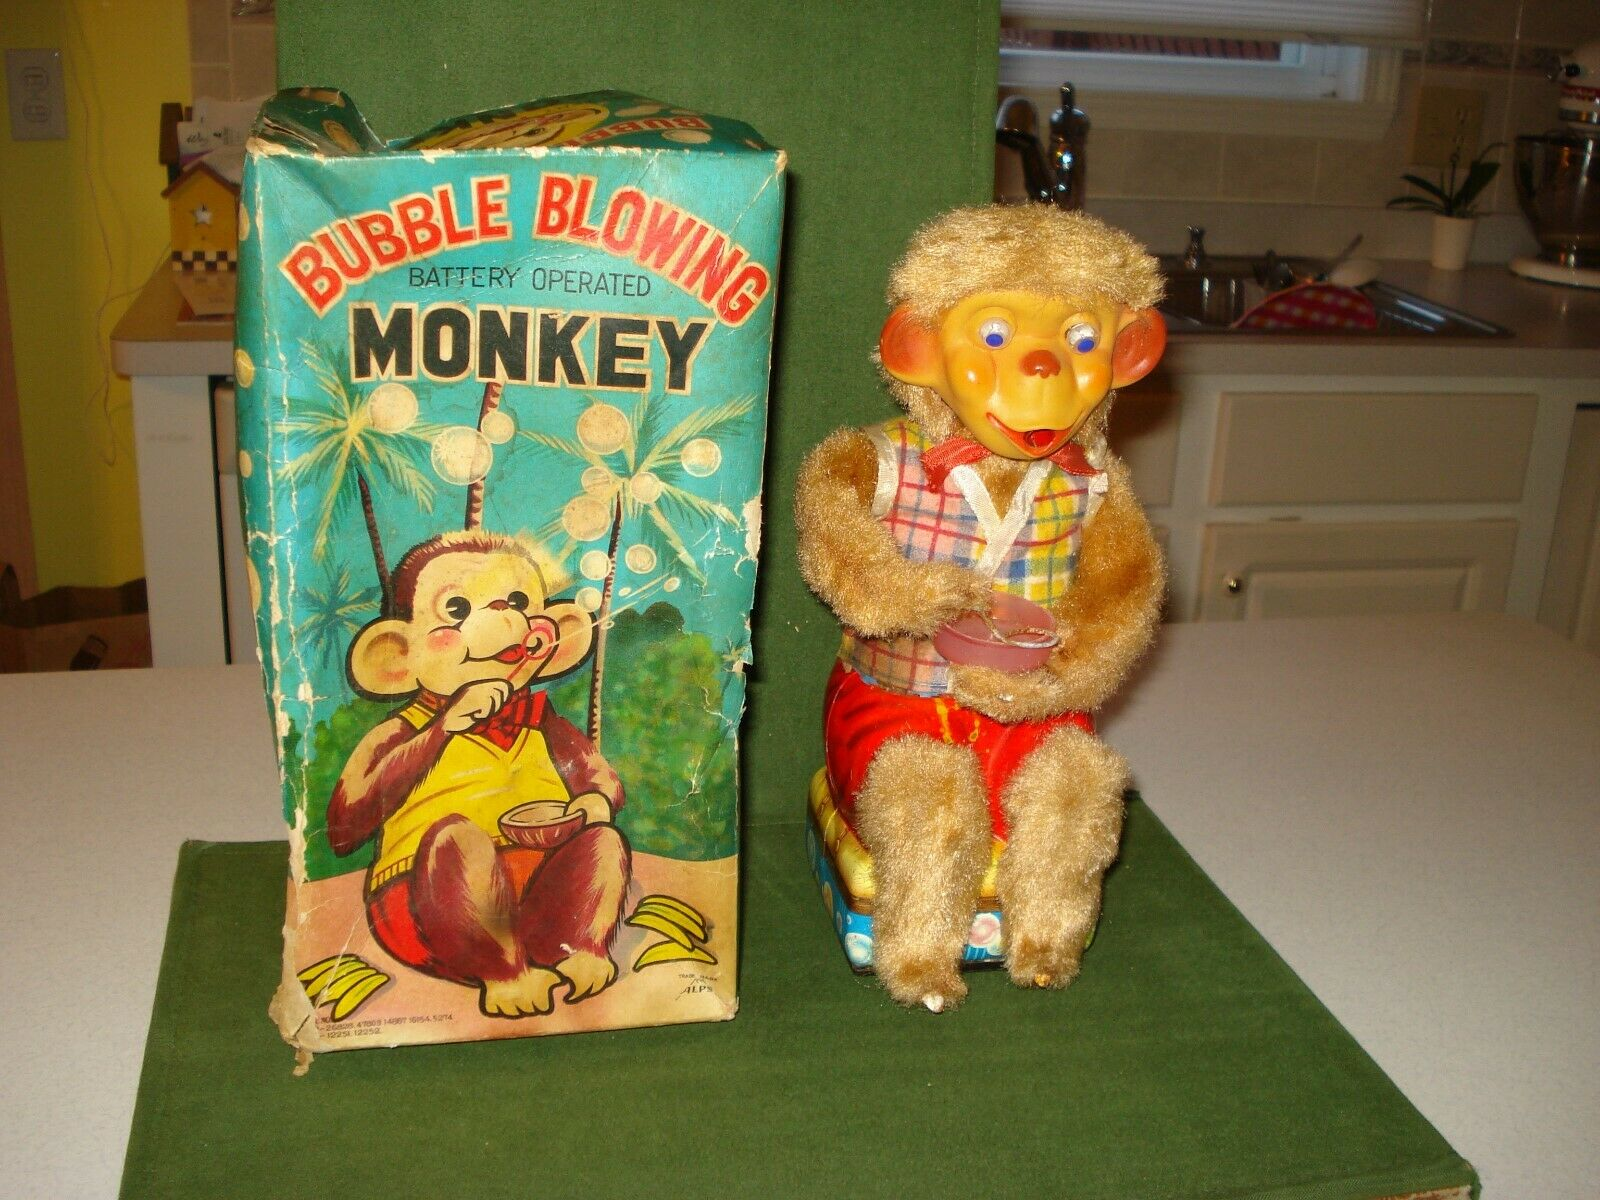 1962 BUBBLE BLOWING MONKEY BATTERY OPERATED TOY, w BOX, WORKS BY ALPS